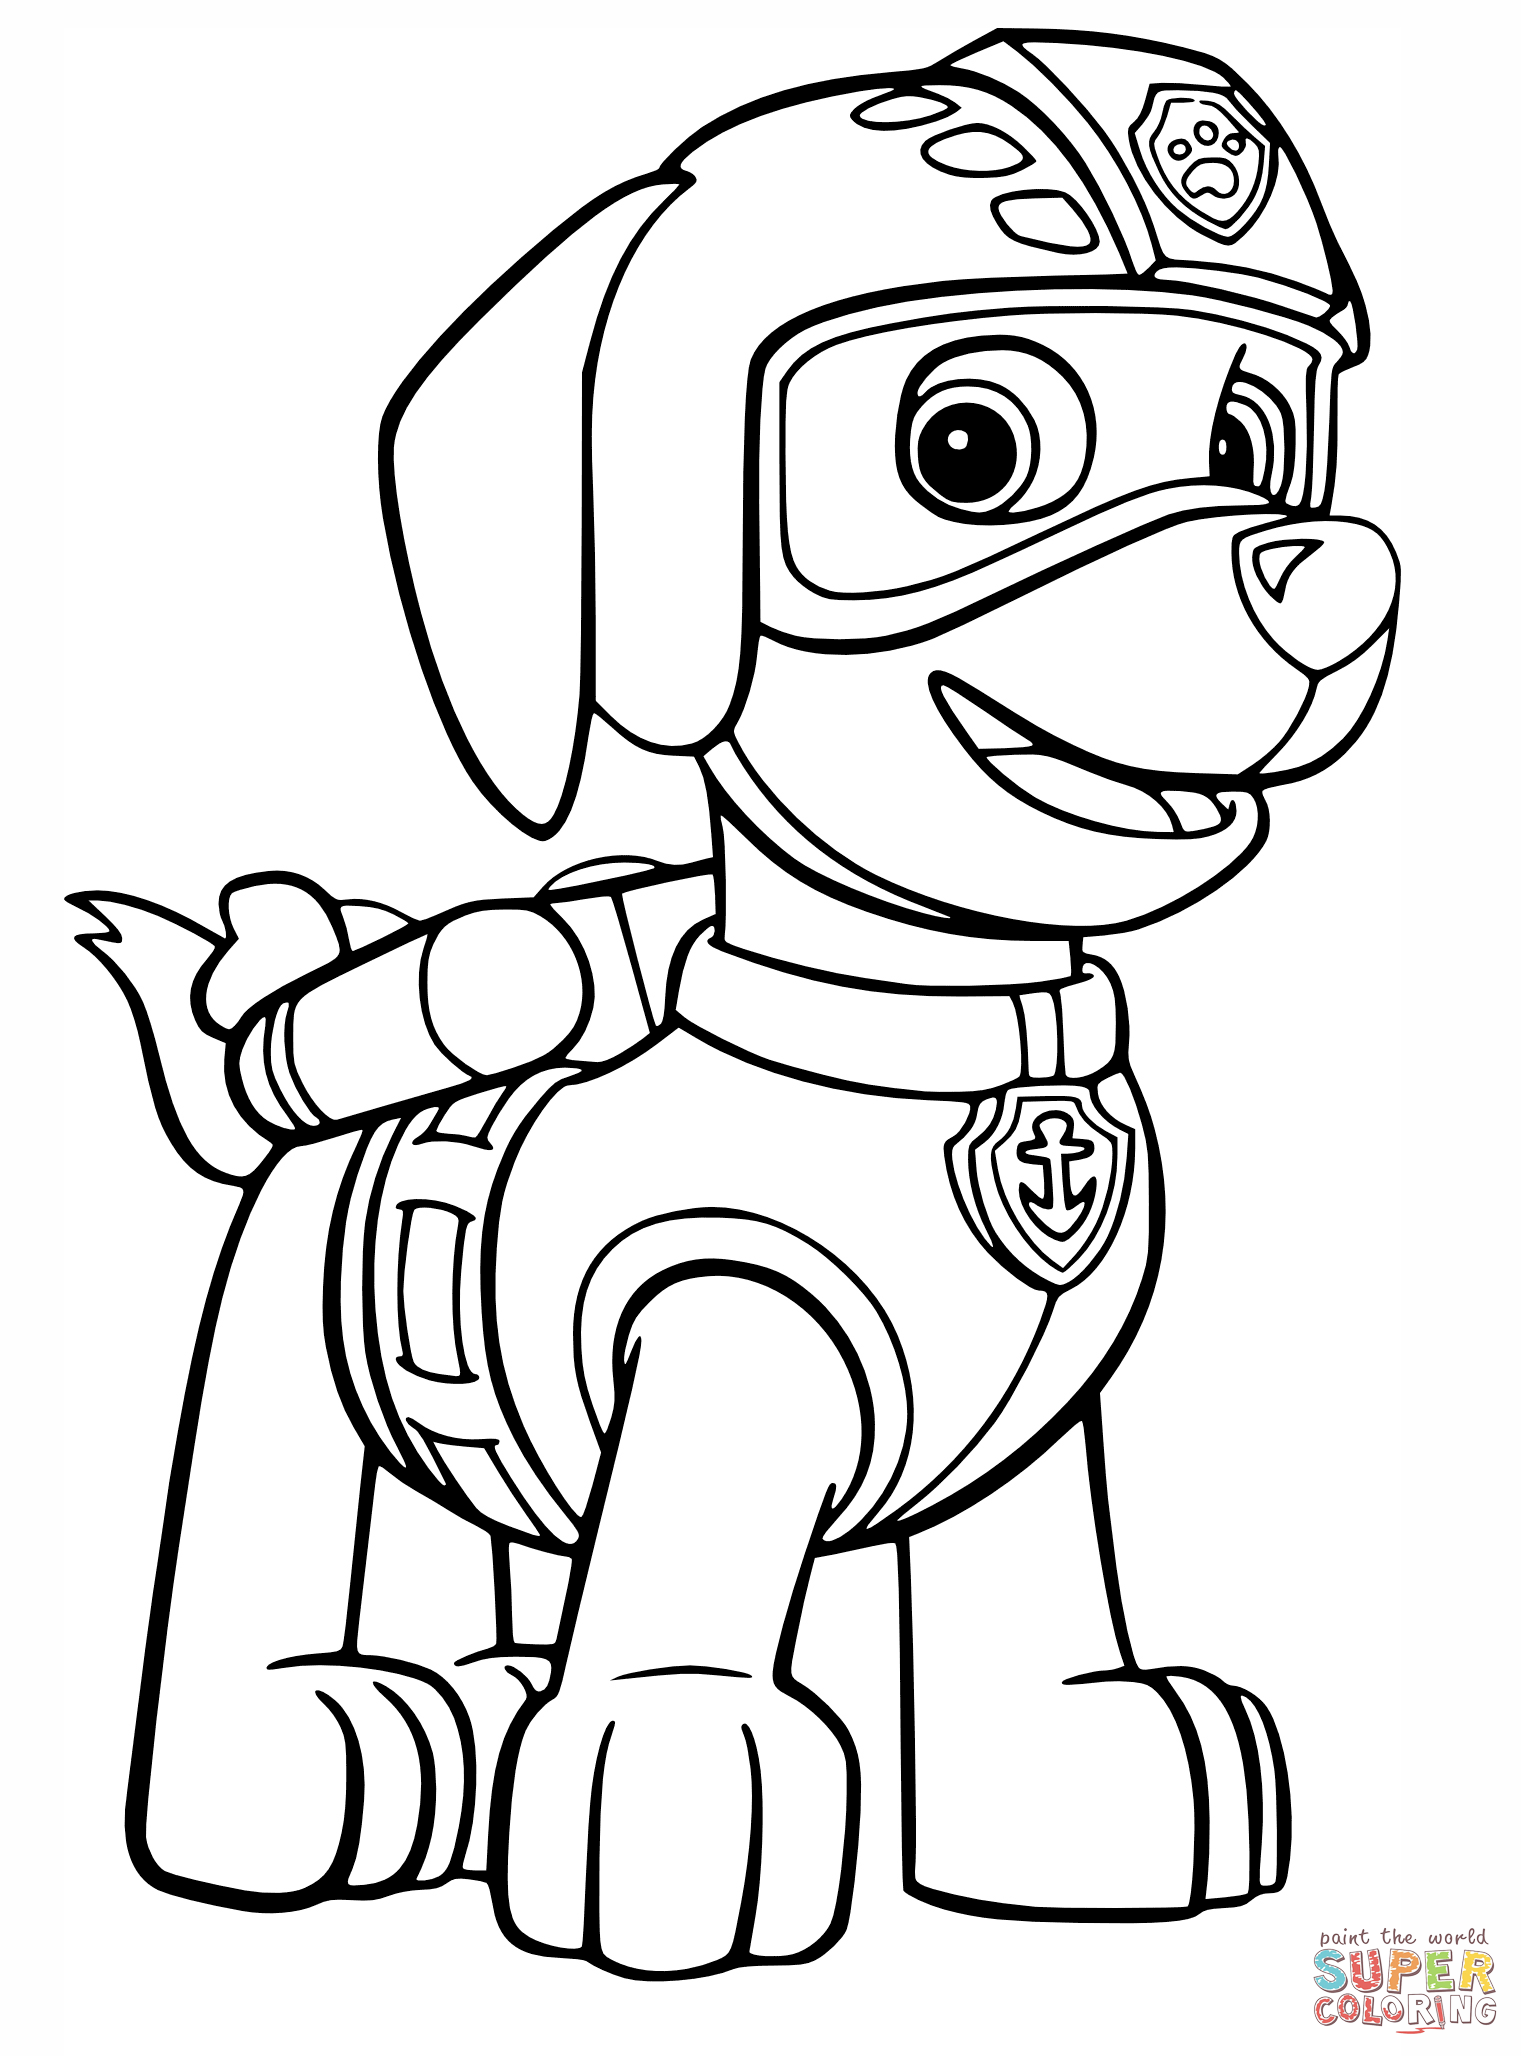 Chase head paw patrol clipart clipart freeuse library PAW Patrol coloring pages | Free Coloring Pages clipart freeuse library